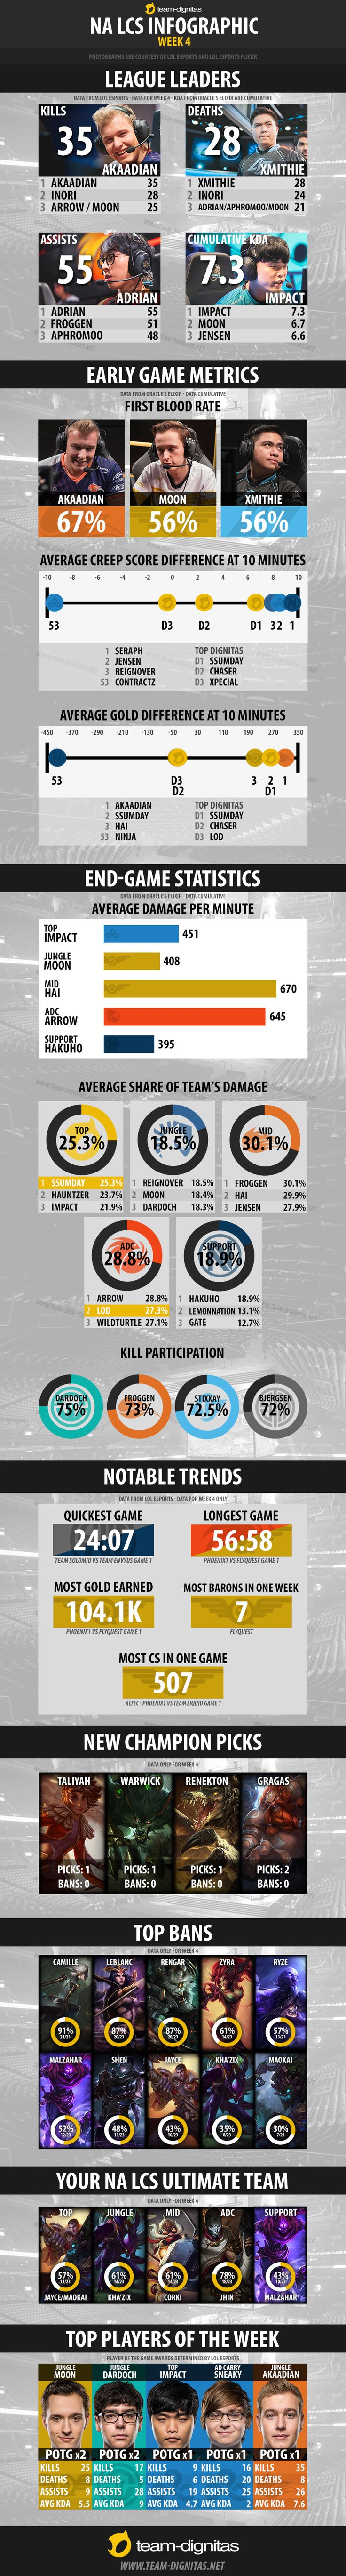 NA LCS Spring Split Infographic - Week 4 http://imgur.com/a/nEhiS #games #LeagueOfLegends #esports #lol #riot #Worlds #gaming